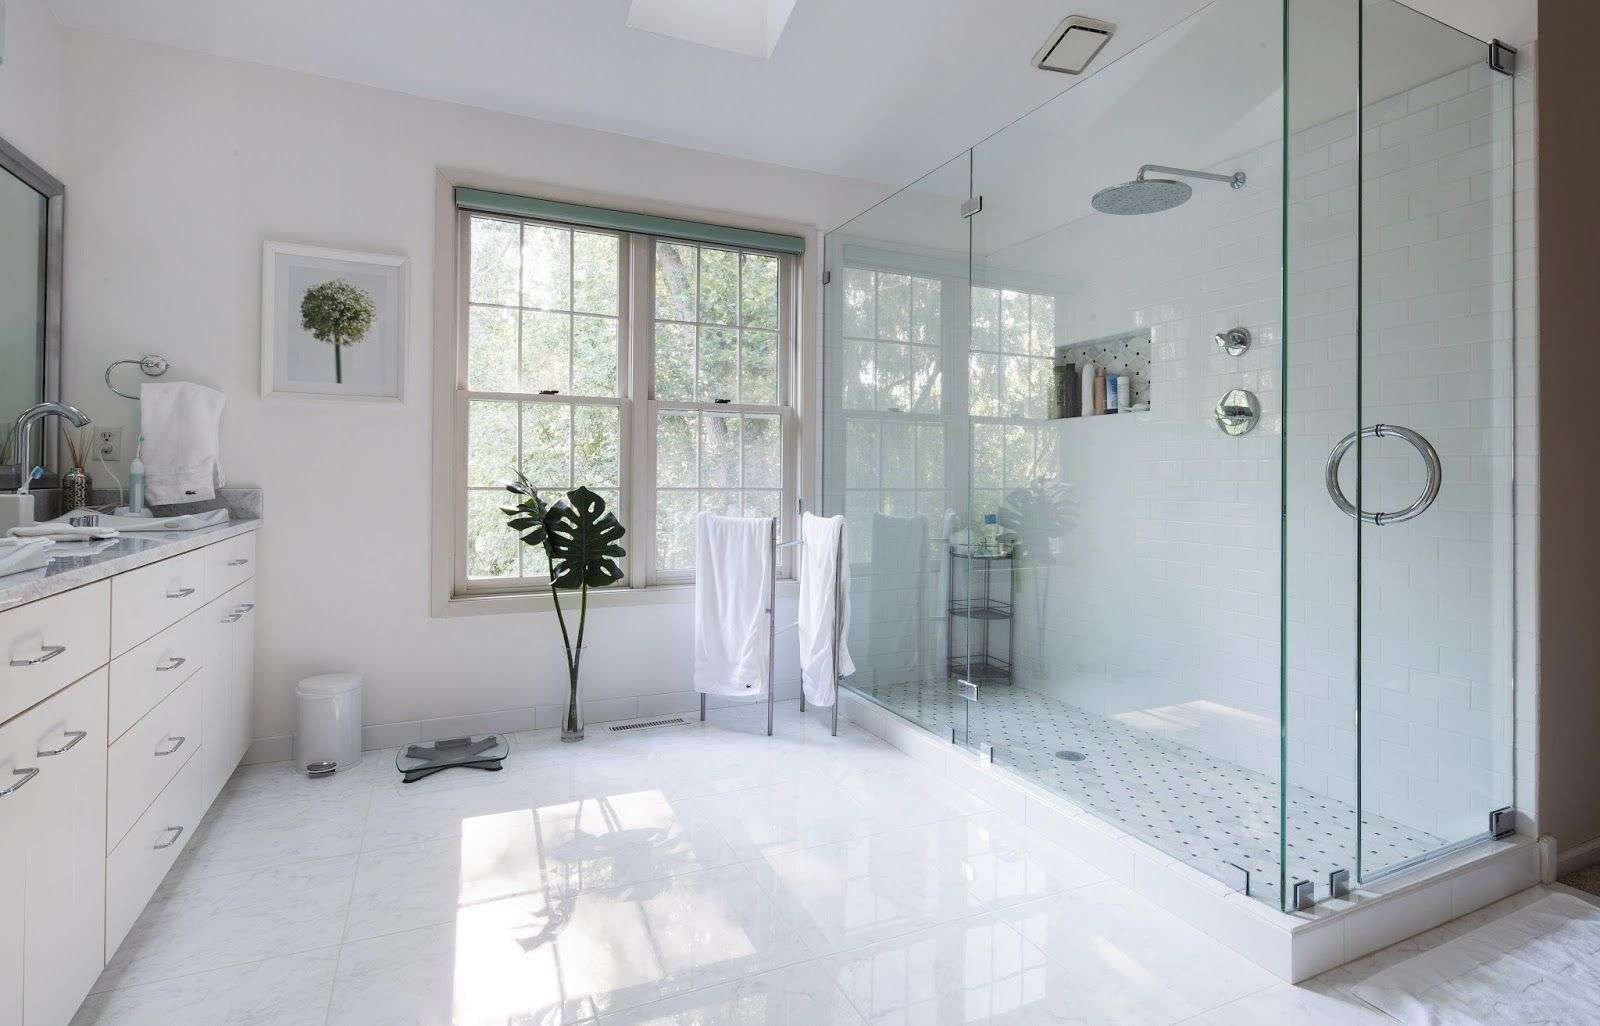 Rule Bathrooms Facing Used Light Shades Marble